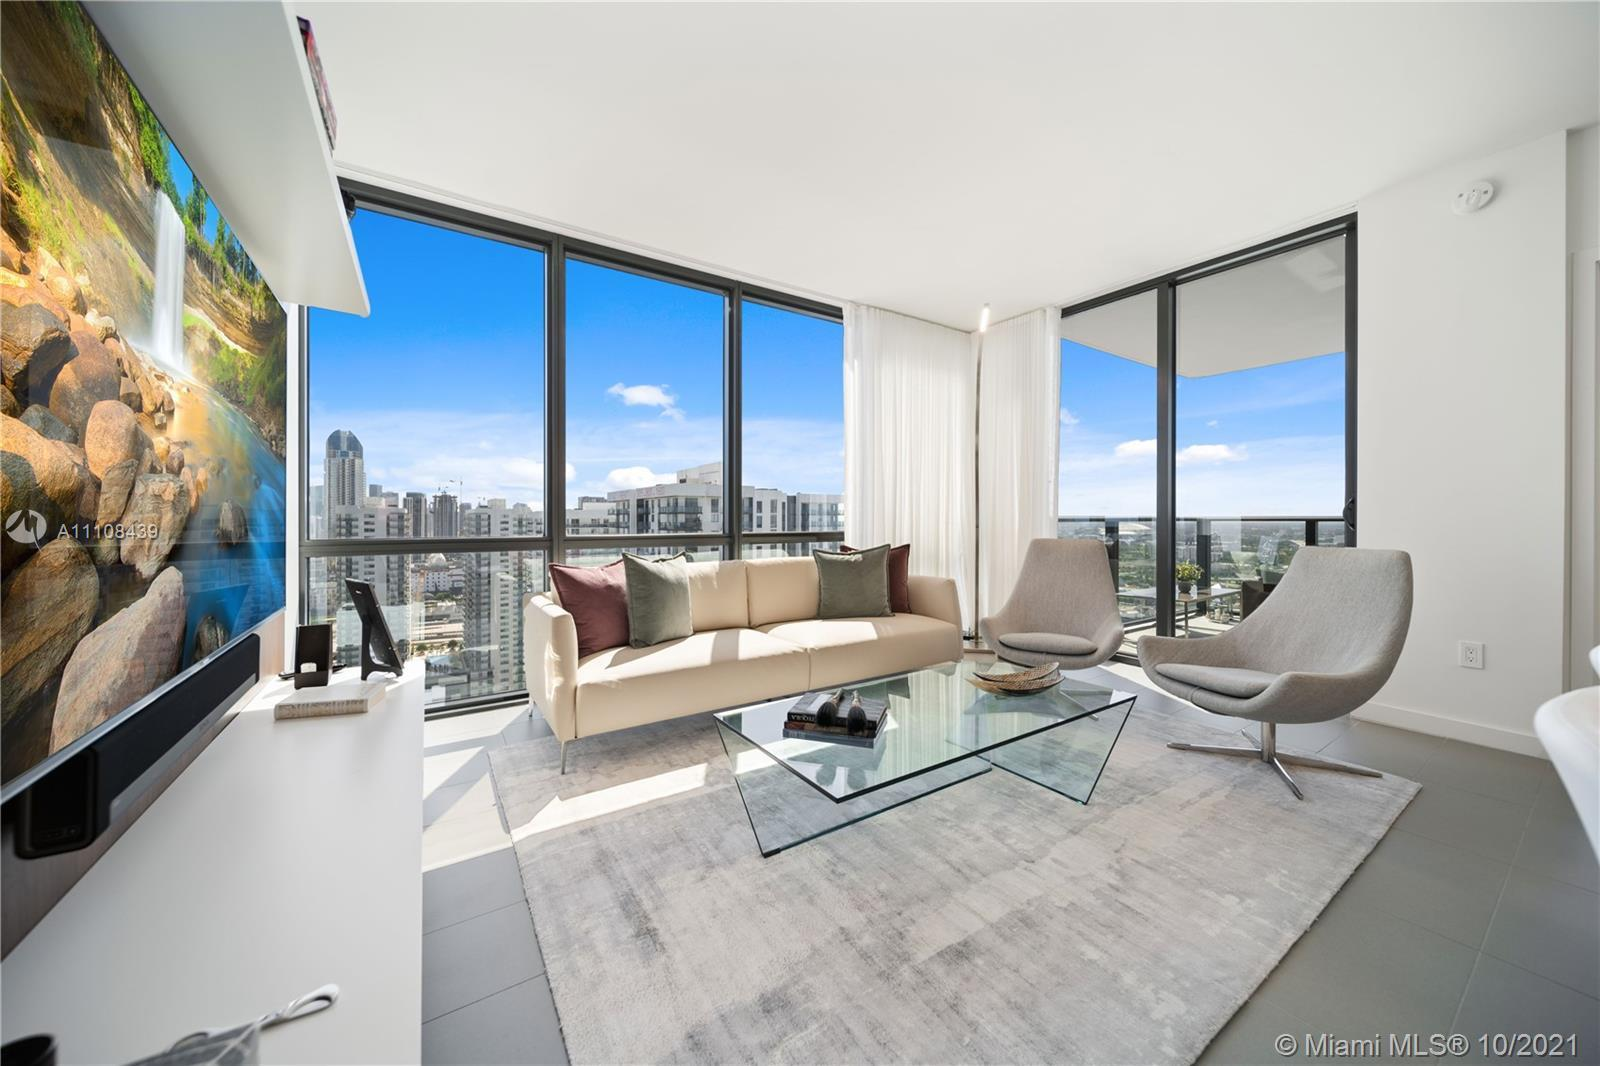 LUXURIOUS 2 BEDROOM 2 BATH THIS BEAUTIFUL APARTMENT IS DECORATED WITH FURNITURE FROM THE BEST DESIGN